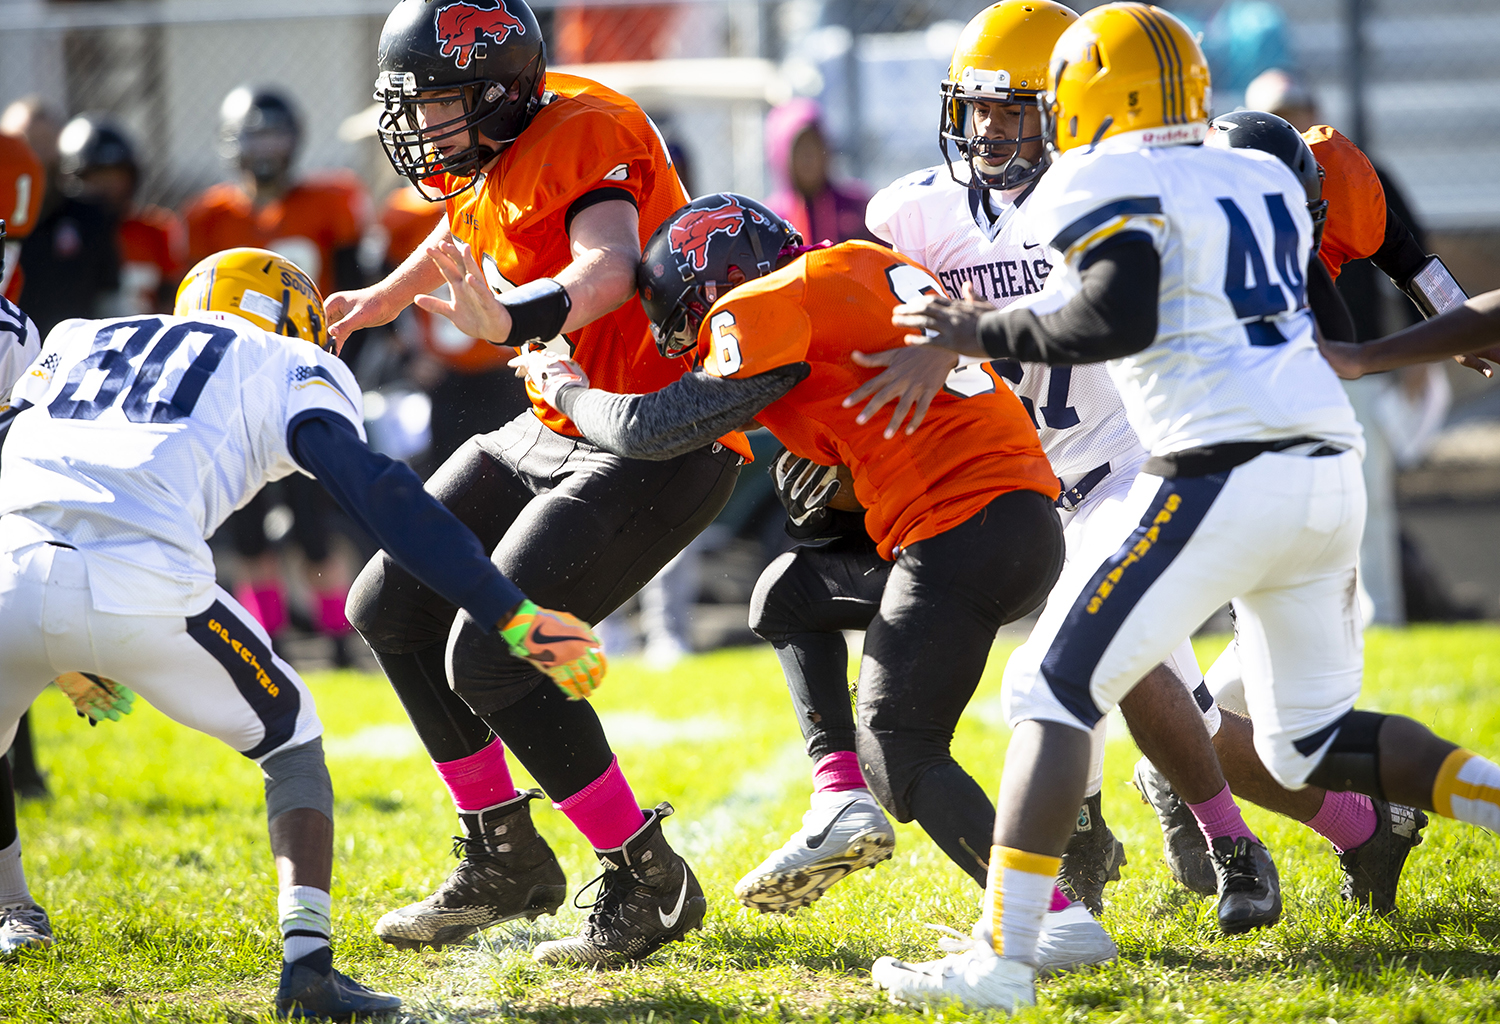 Lanphier's Jacxon Blakey follows his blockers through the Southeast defense at Memorial Stadium Saturday, Oct. 20, 2018 in Springfield, Ill. [Rich Saal/The State Journal-Register]